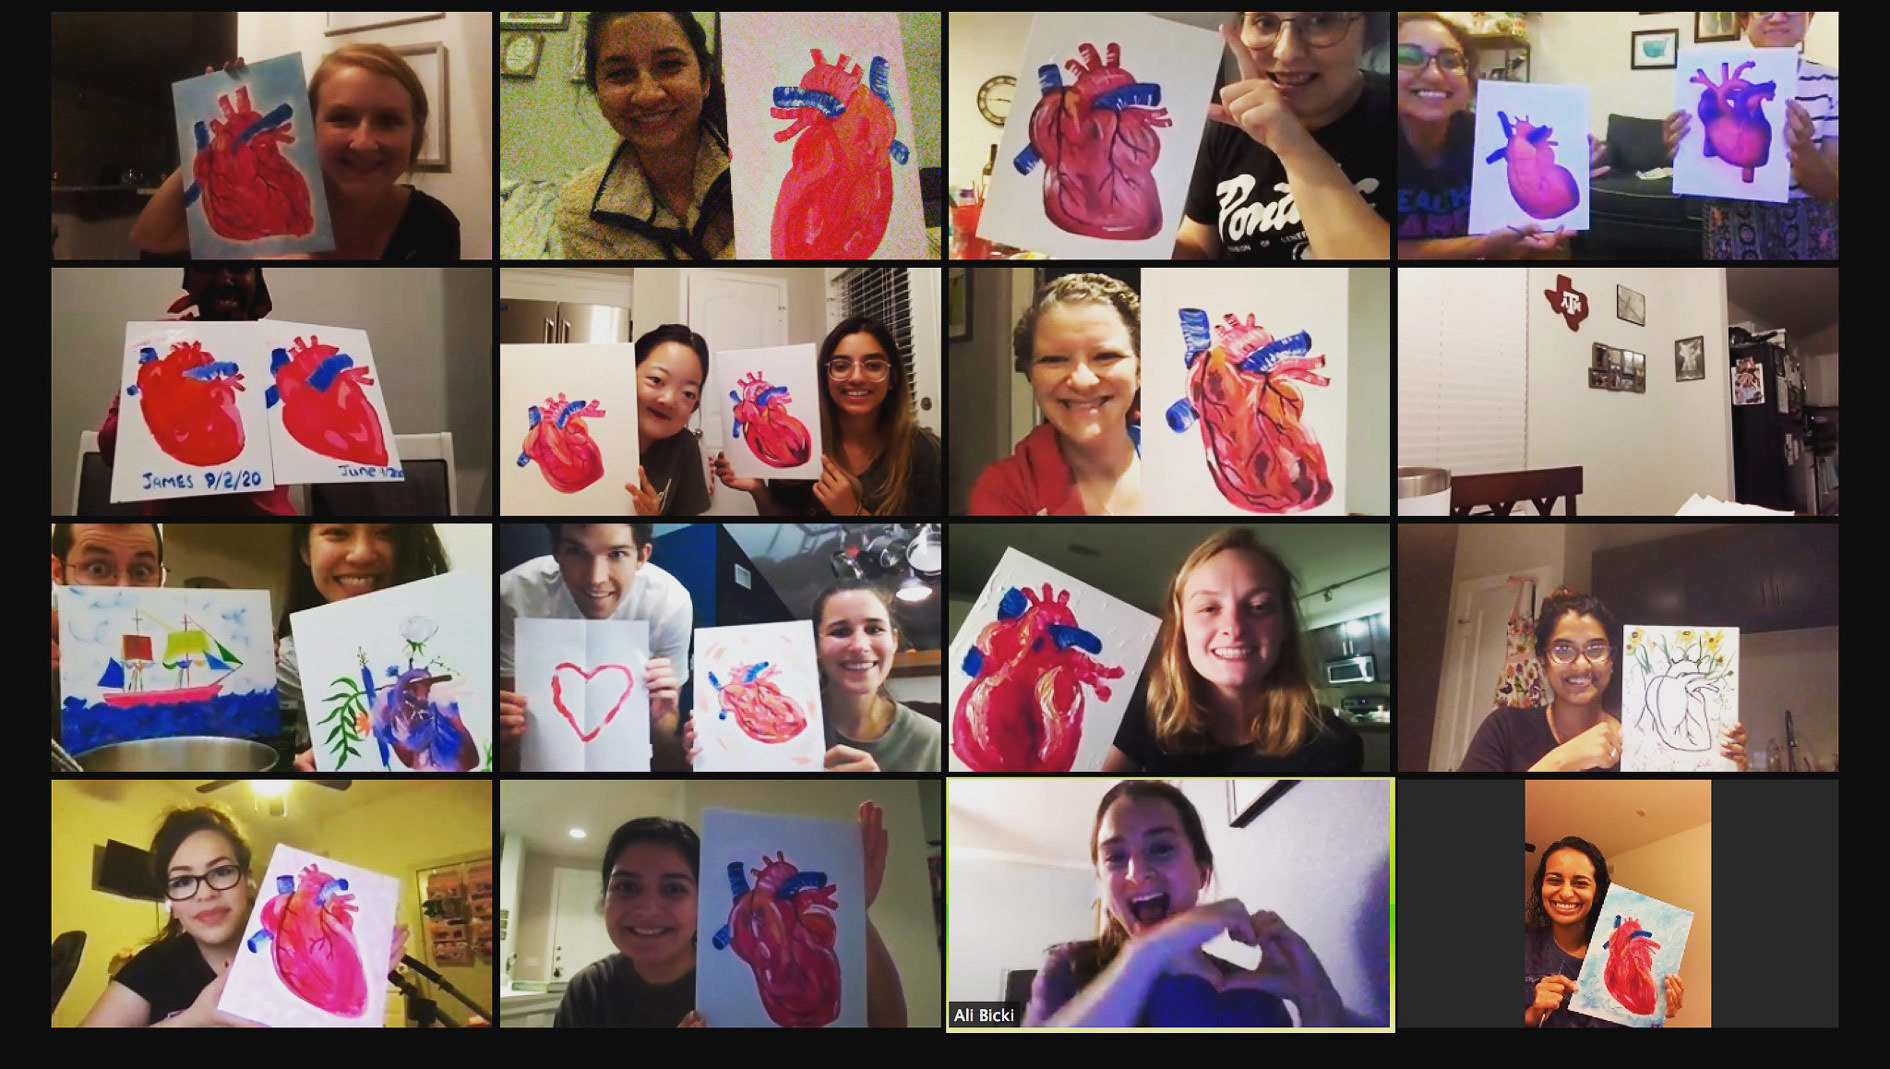 A group of pediatrics residents on a video call holding up paintings of hearts that they created.